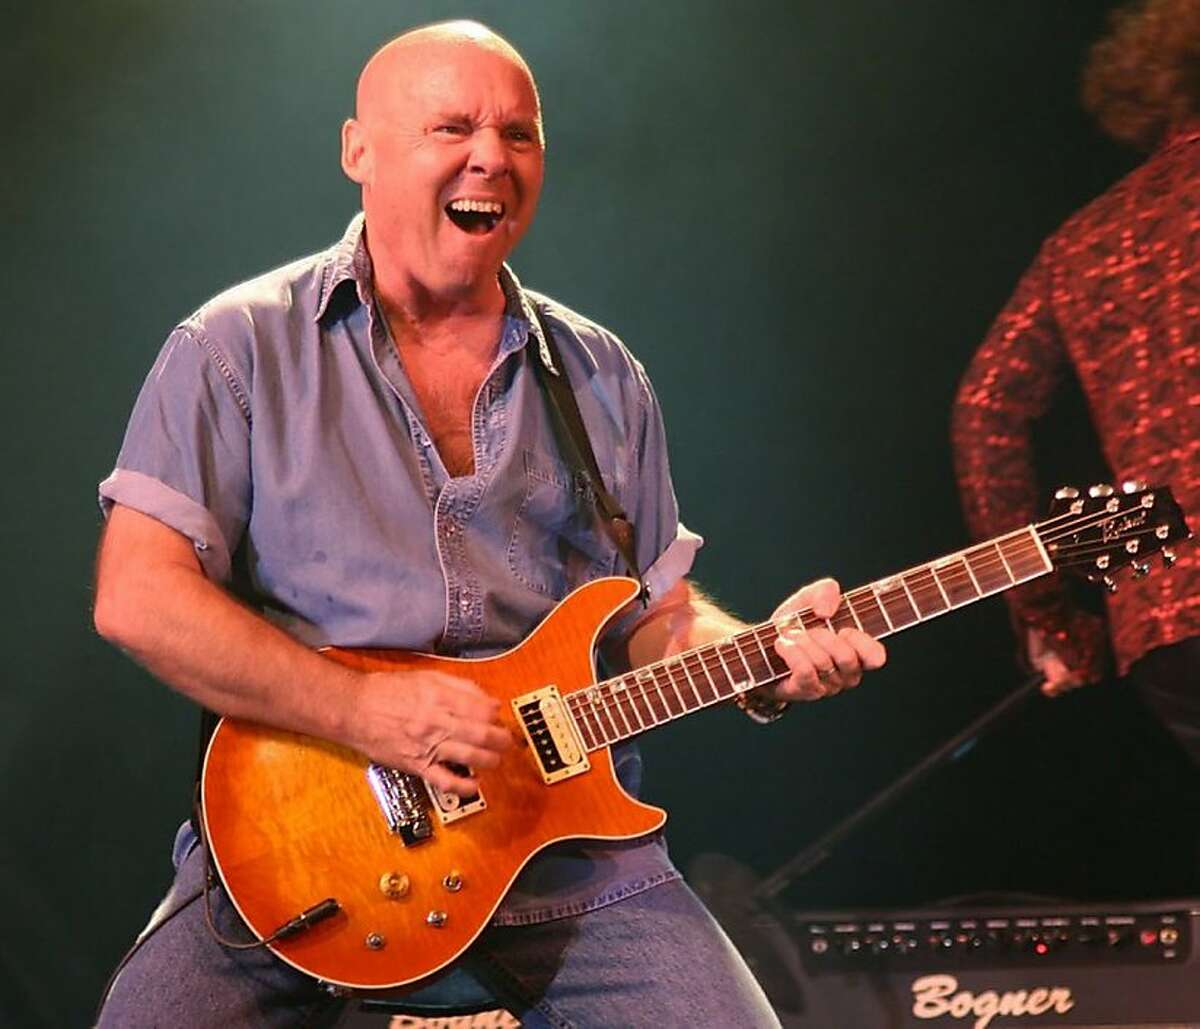 This undated photo provided by Prime Time Entertainment Inc. shows Rock guitarist Ronnie Montrose. Montrose, who formed the band that bore his name and performed with some of rock's heavy hitters, passed away at his home in Millbrae, Calif. on Saturday, March 3, 2012, his booking agent said. He was 64. (AP Photo/Prime Time Entertainment Inc)